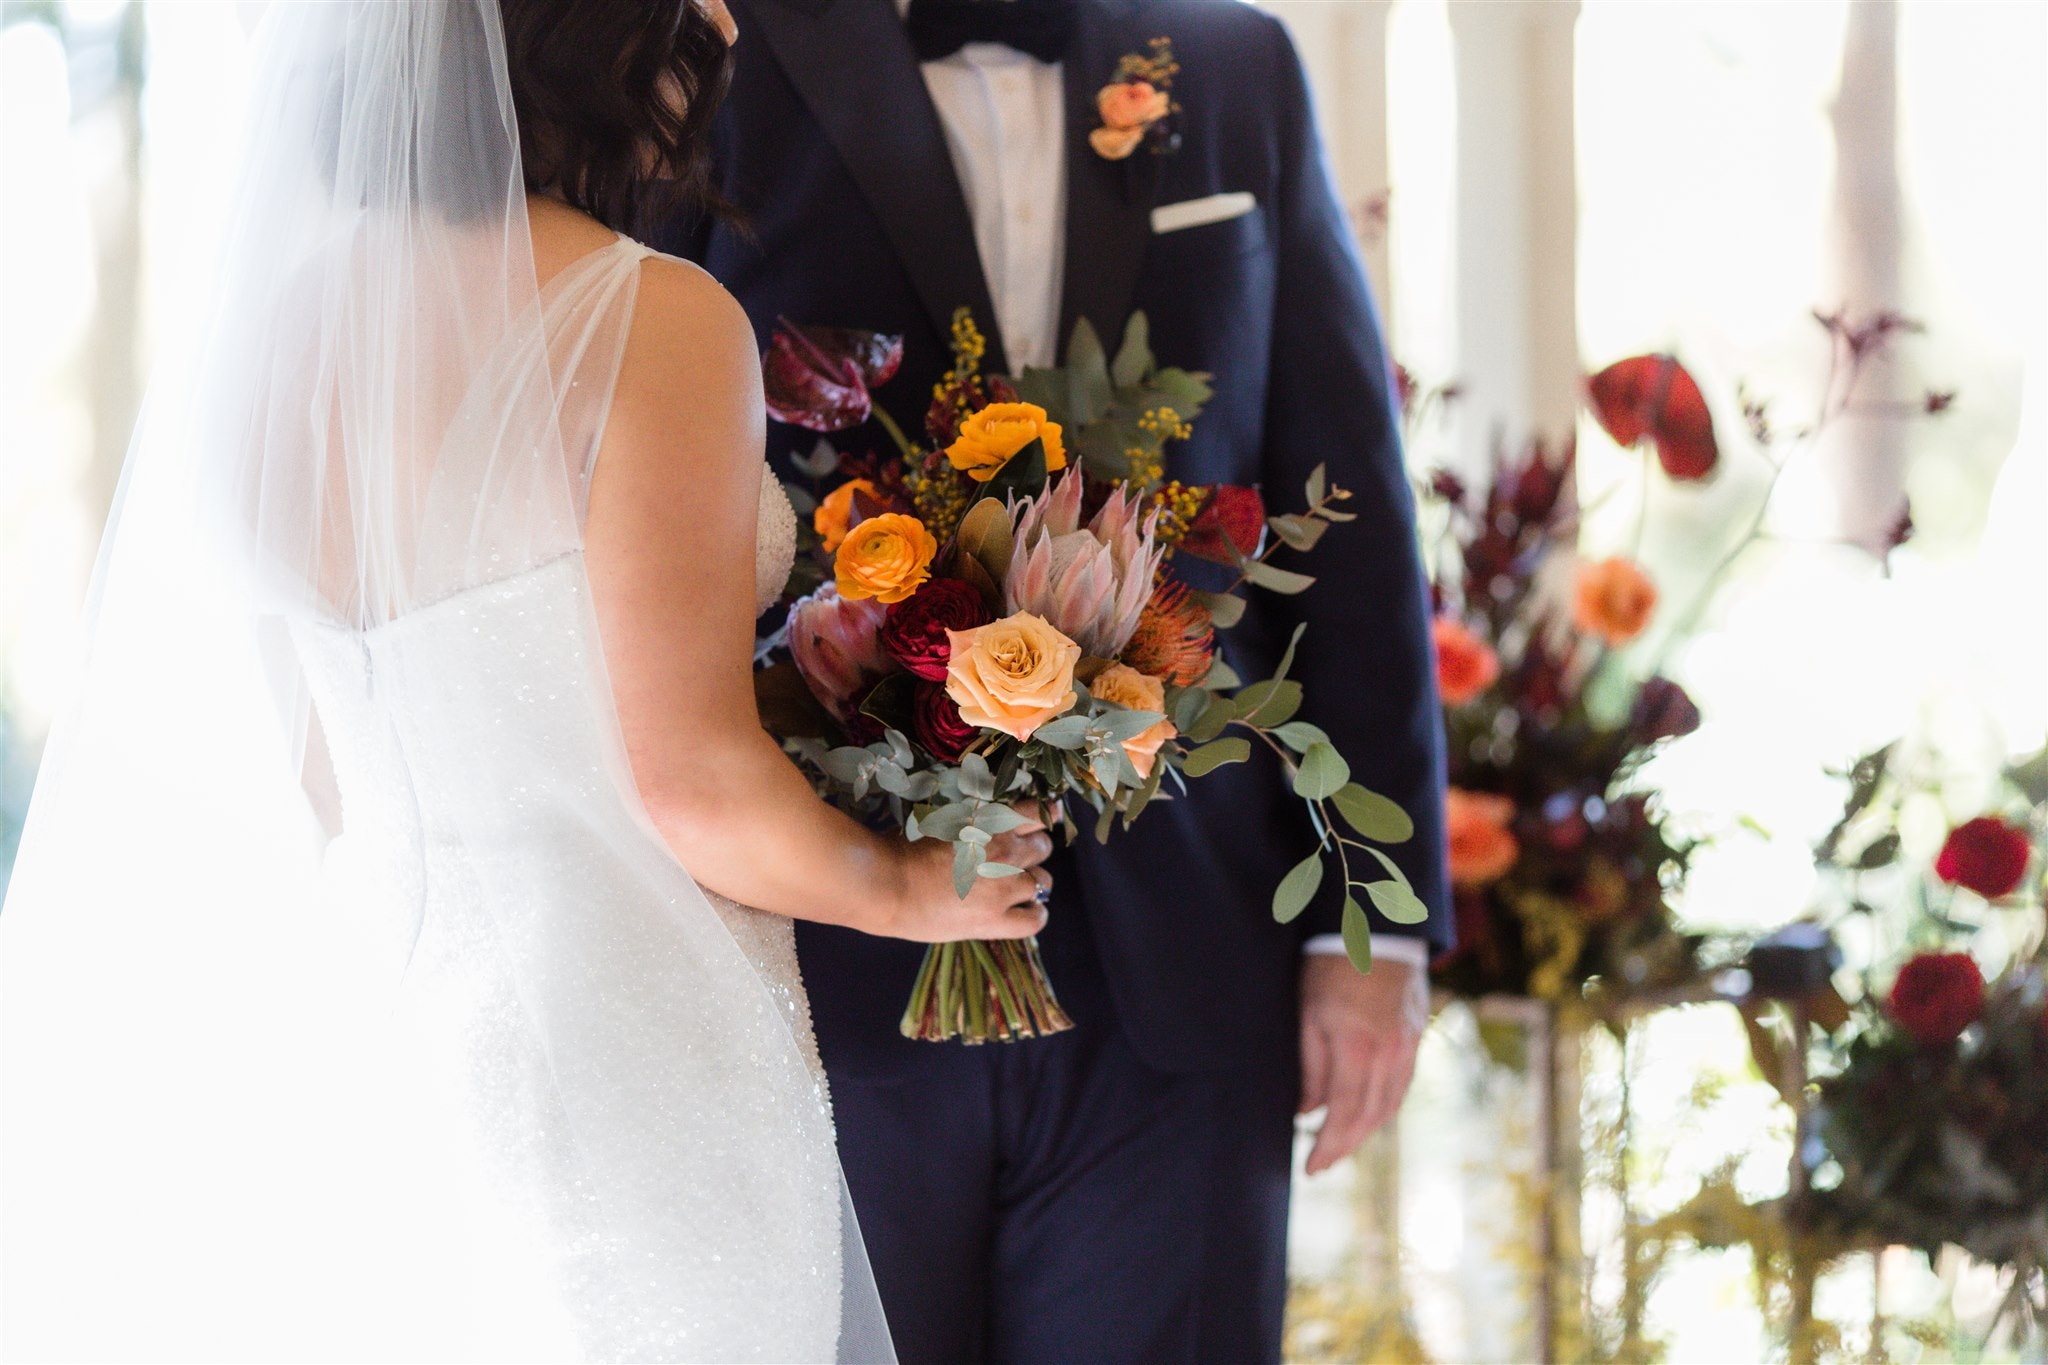 Bride standing next to groom holding bouquet